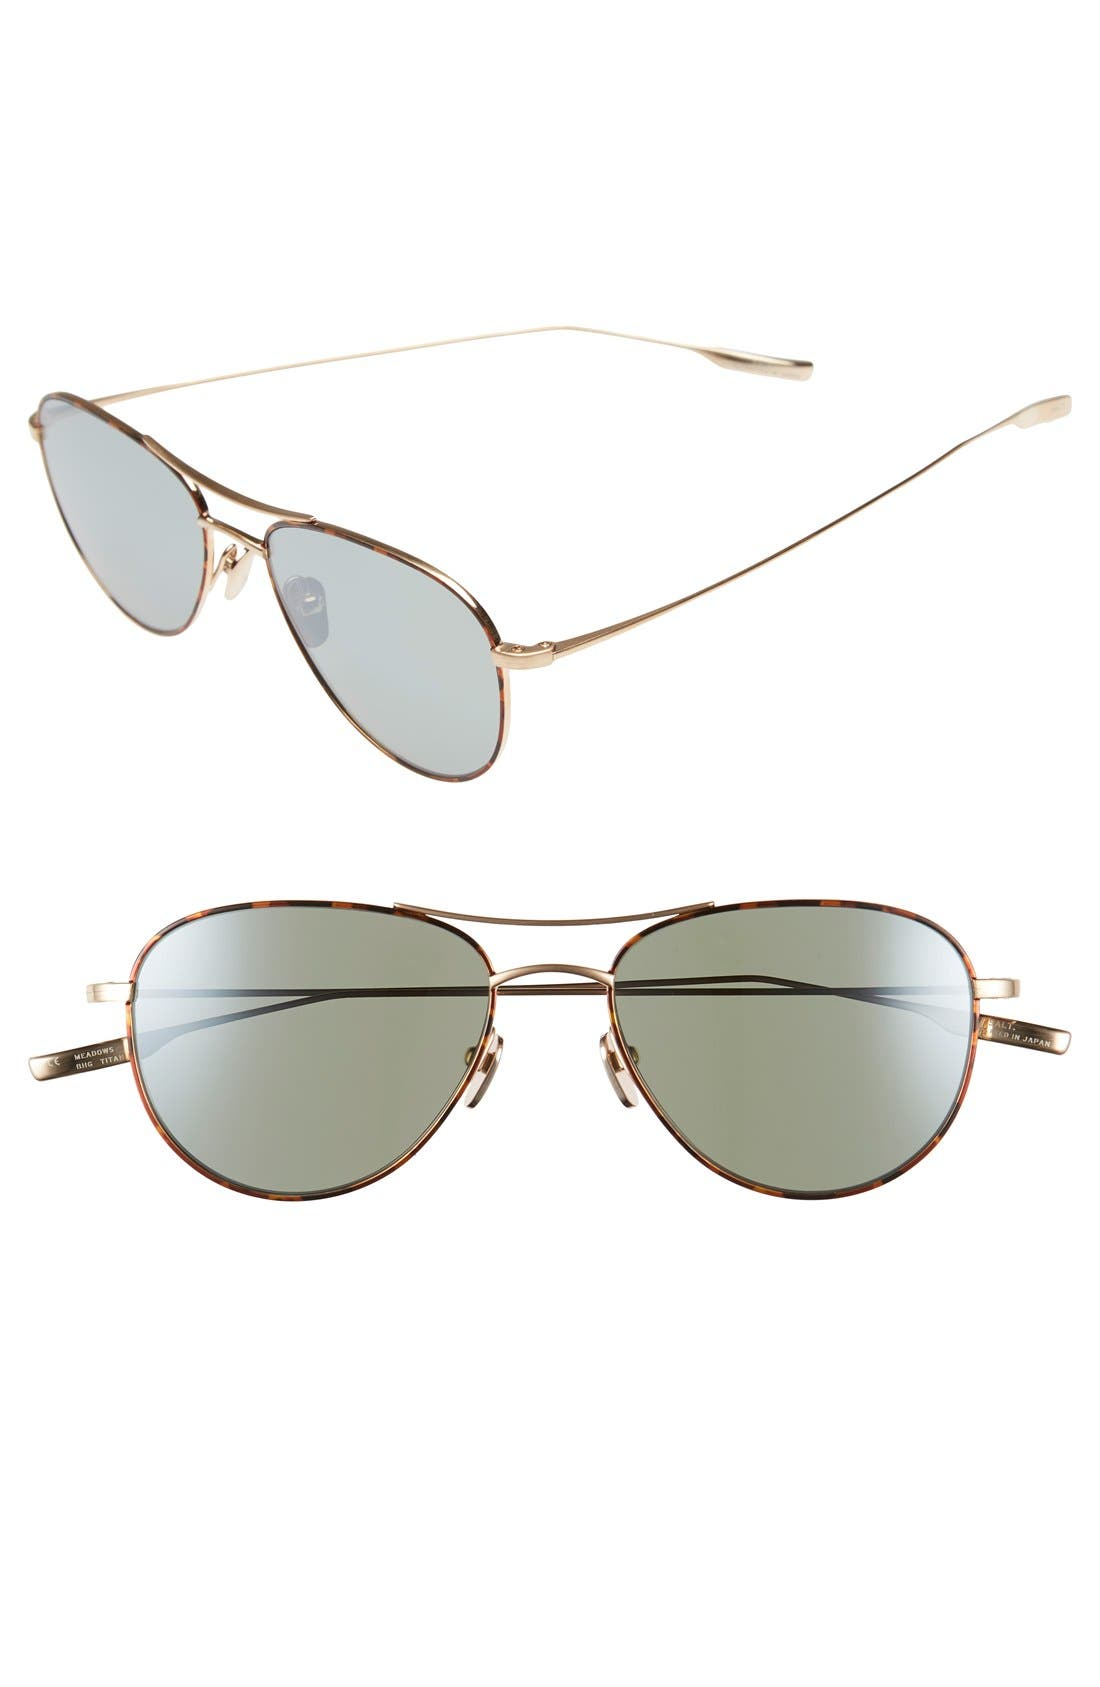 SALT 'Meadows' 54mm Polarized Aviator Sunglasses